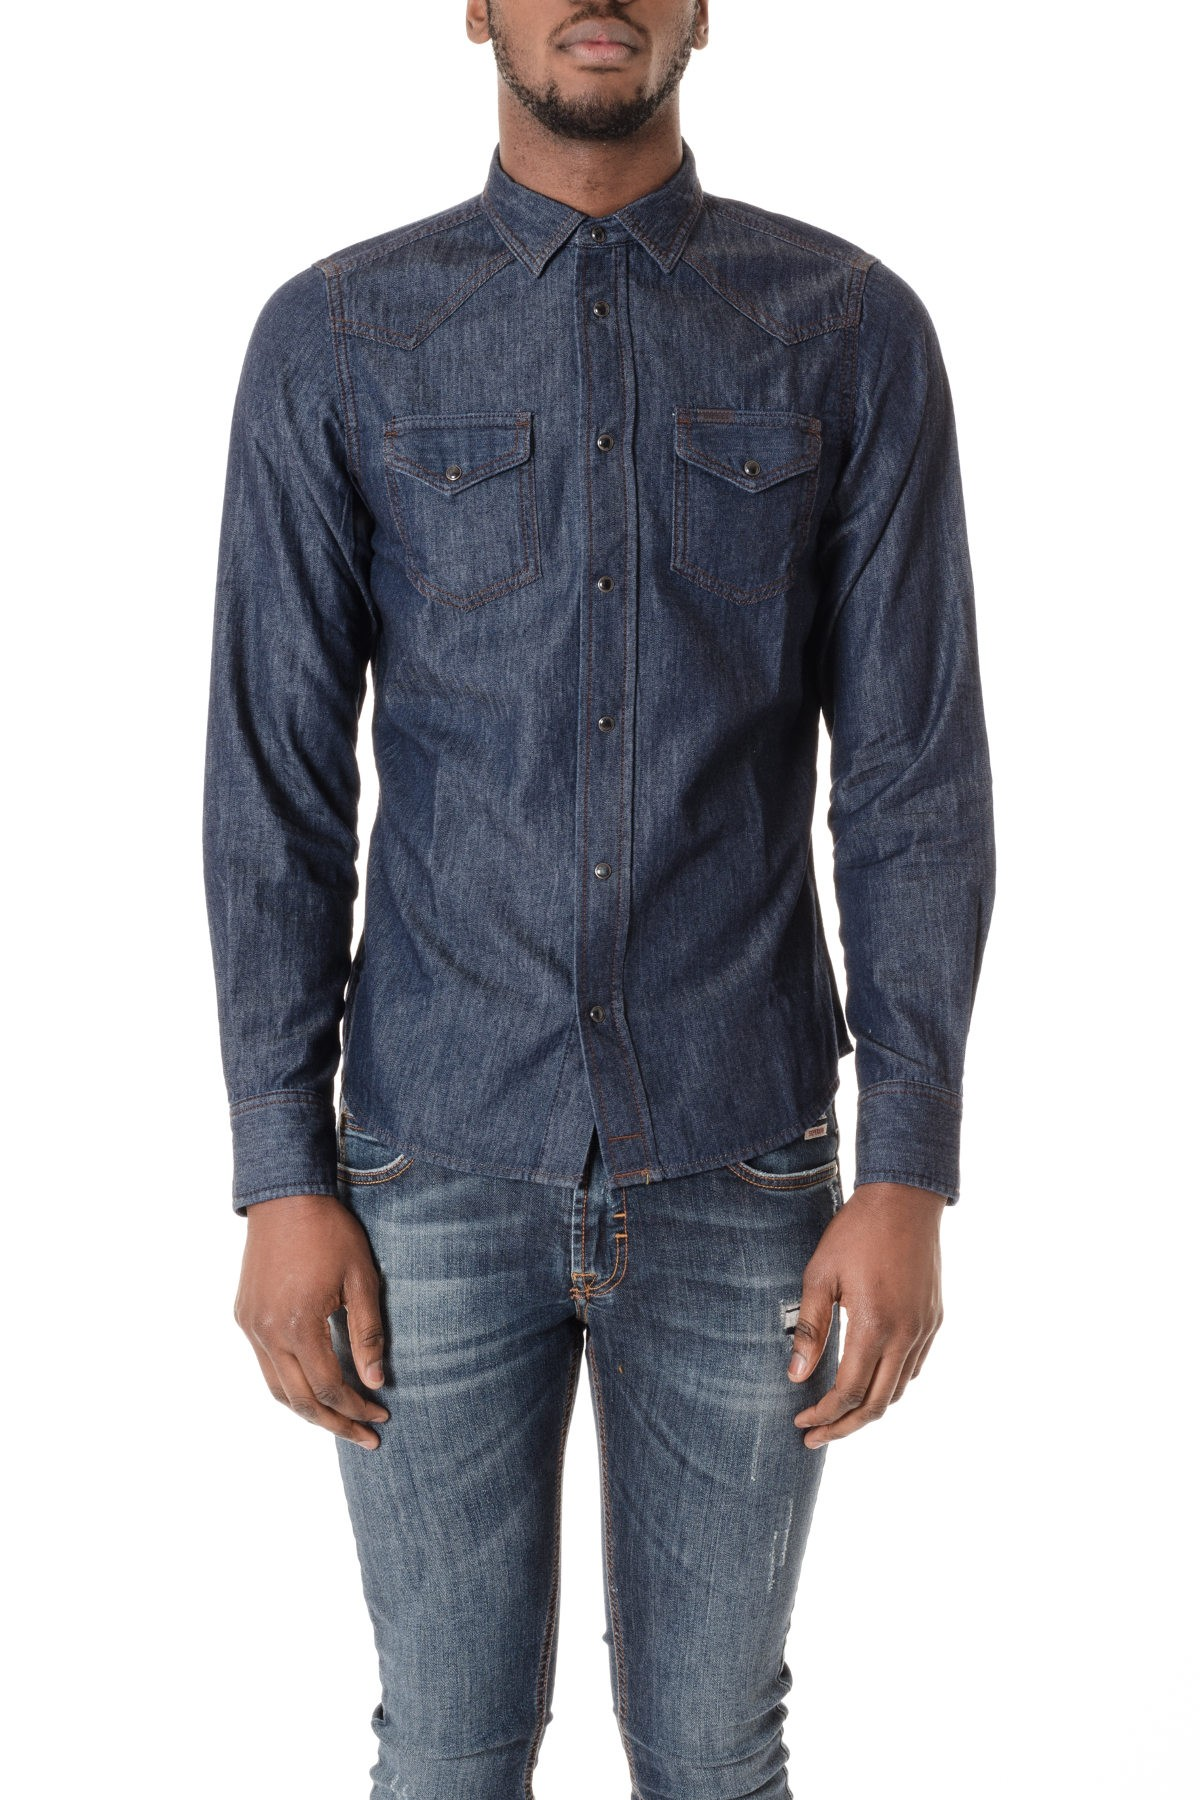 1c88ce862d Dark denim shirt for men DIESEL S S 16 - Rione Fontana